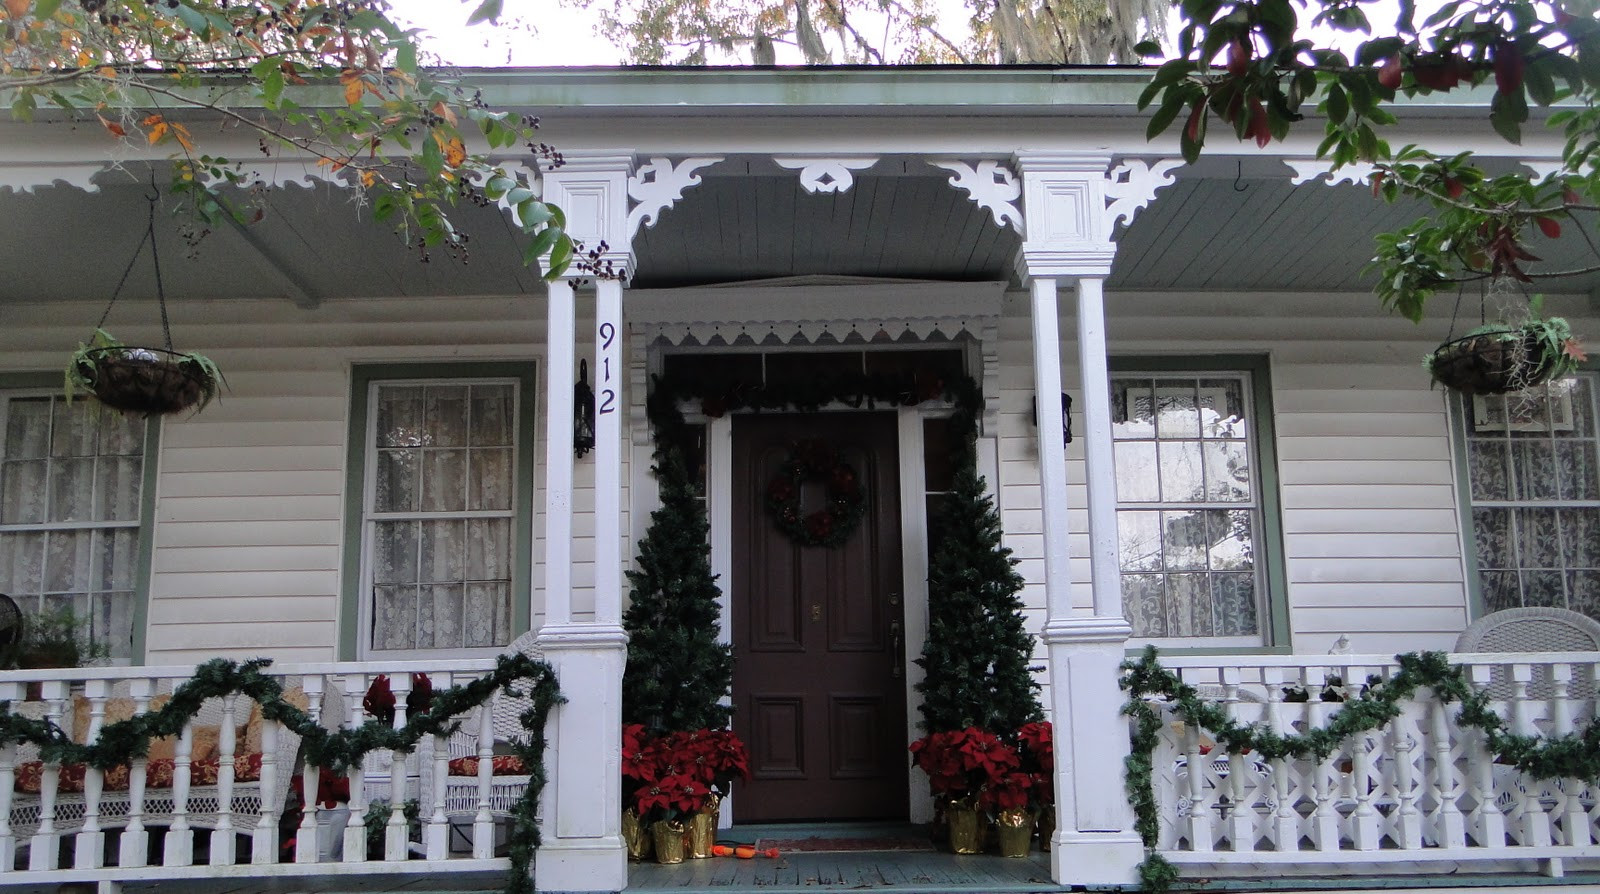 Porch Christmas Decorations  Victorian Parlor II Christmas Porch